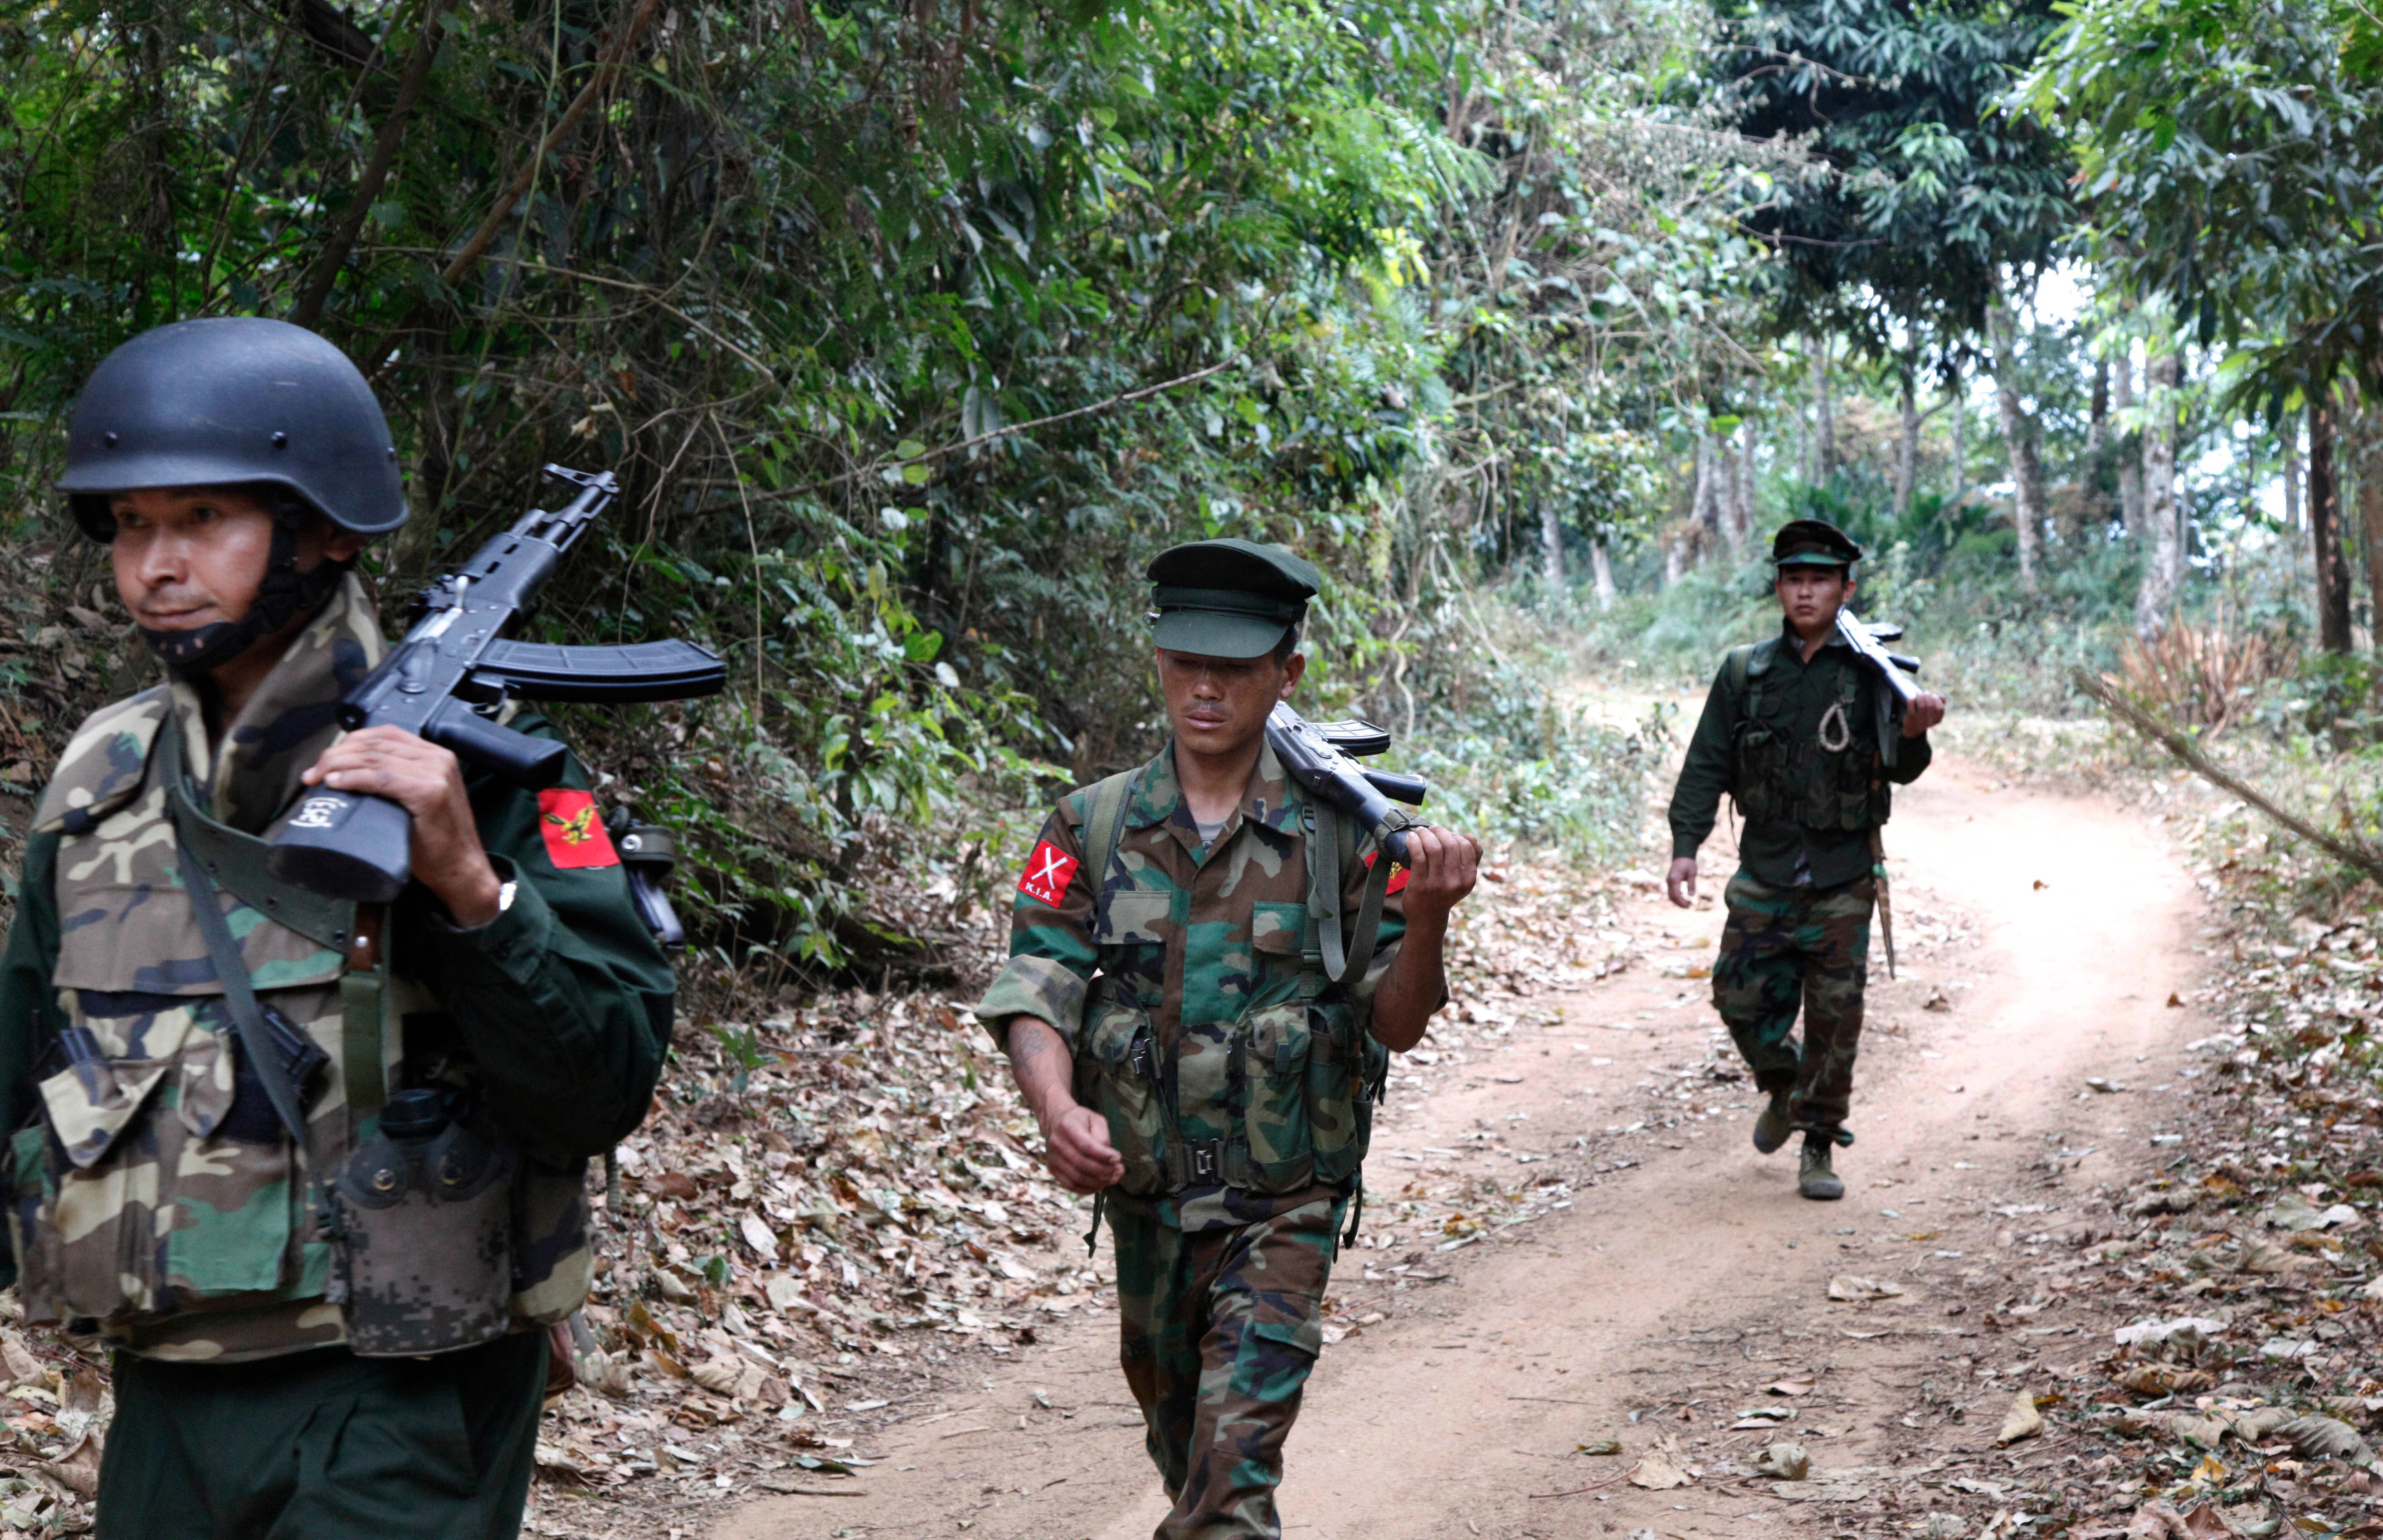 Kachin Independence Army fighters walk in a jungle path from Mu Du front line to Hpalap outpost in an area controlled by the Kachin rebels in northern Kachin state, Myanmar, March 17, 2018. While the world is focused on attacks on Myanmar's Rohingy...